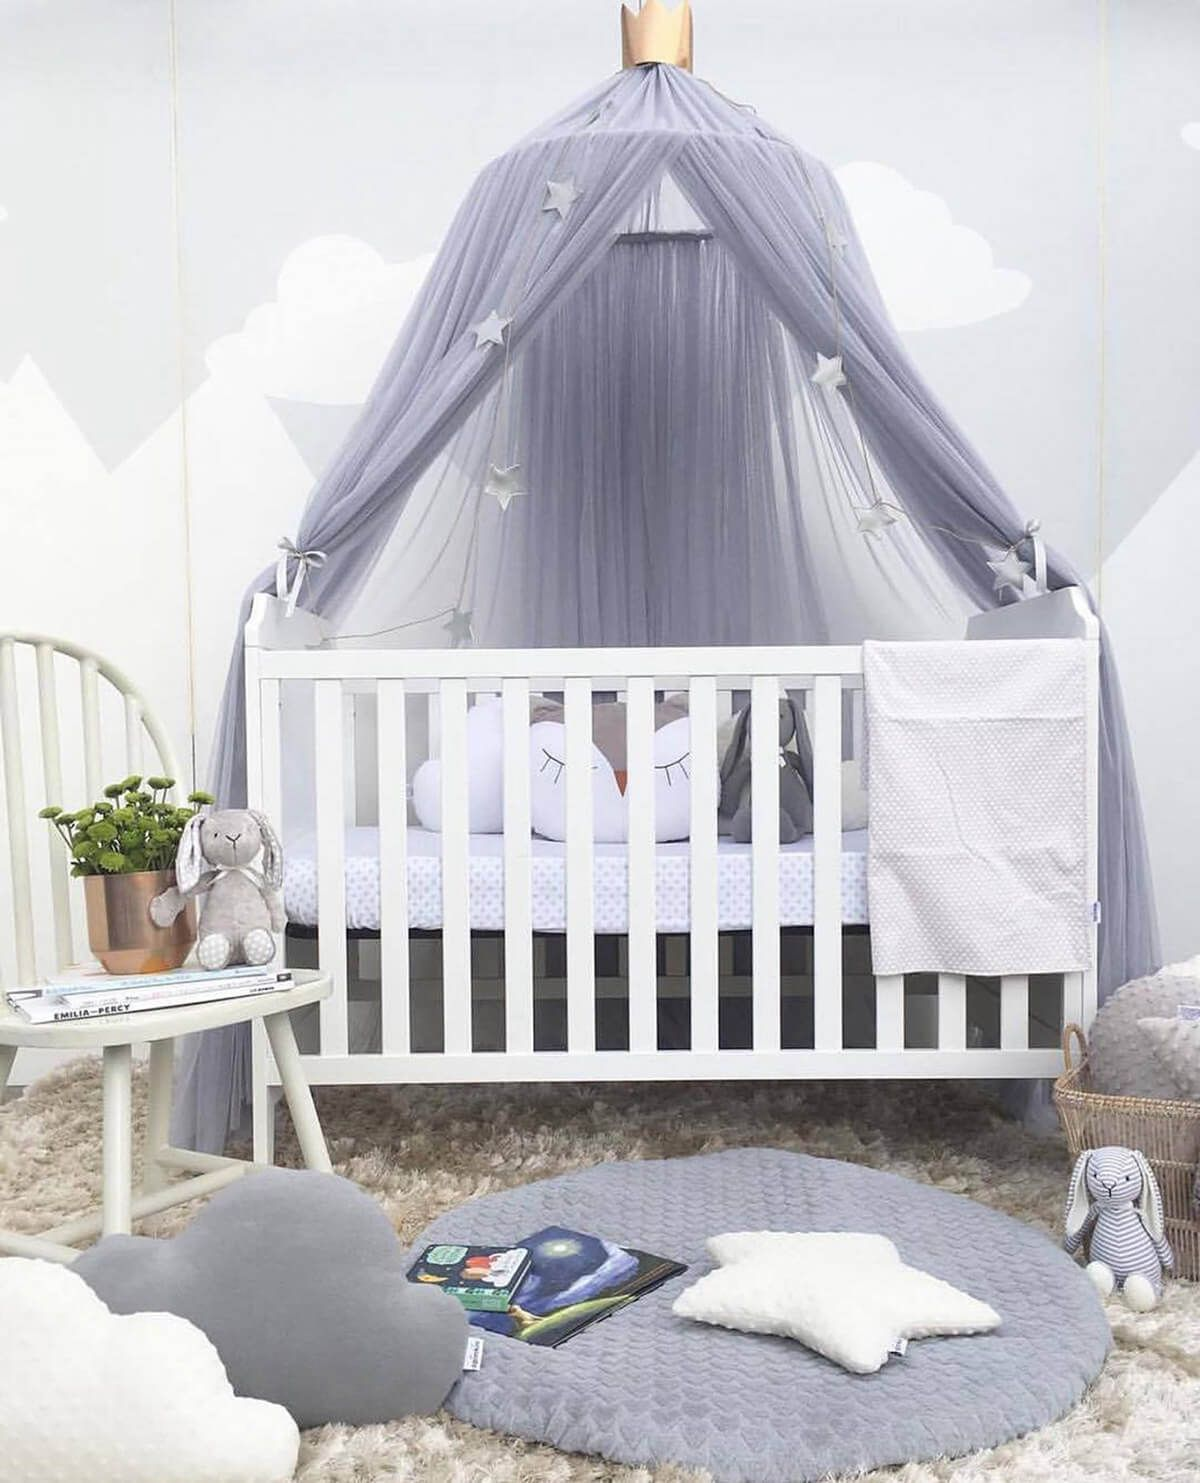 24 Dreamy Canopy Bed Ideas And Designs That Will Make You Fall In